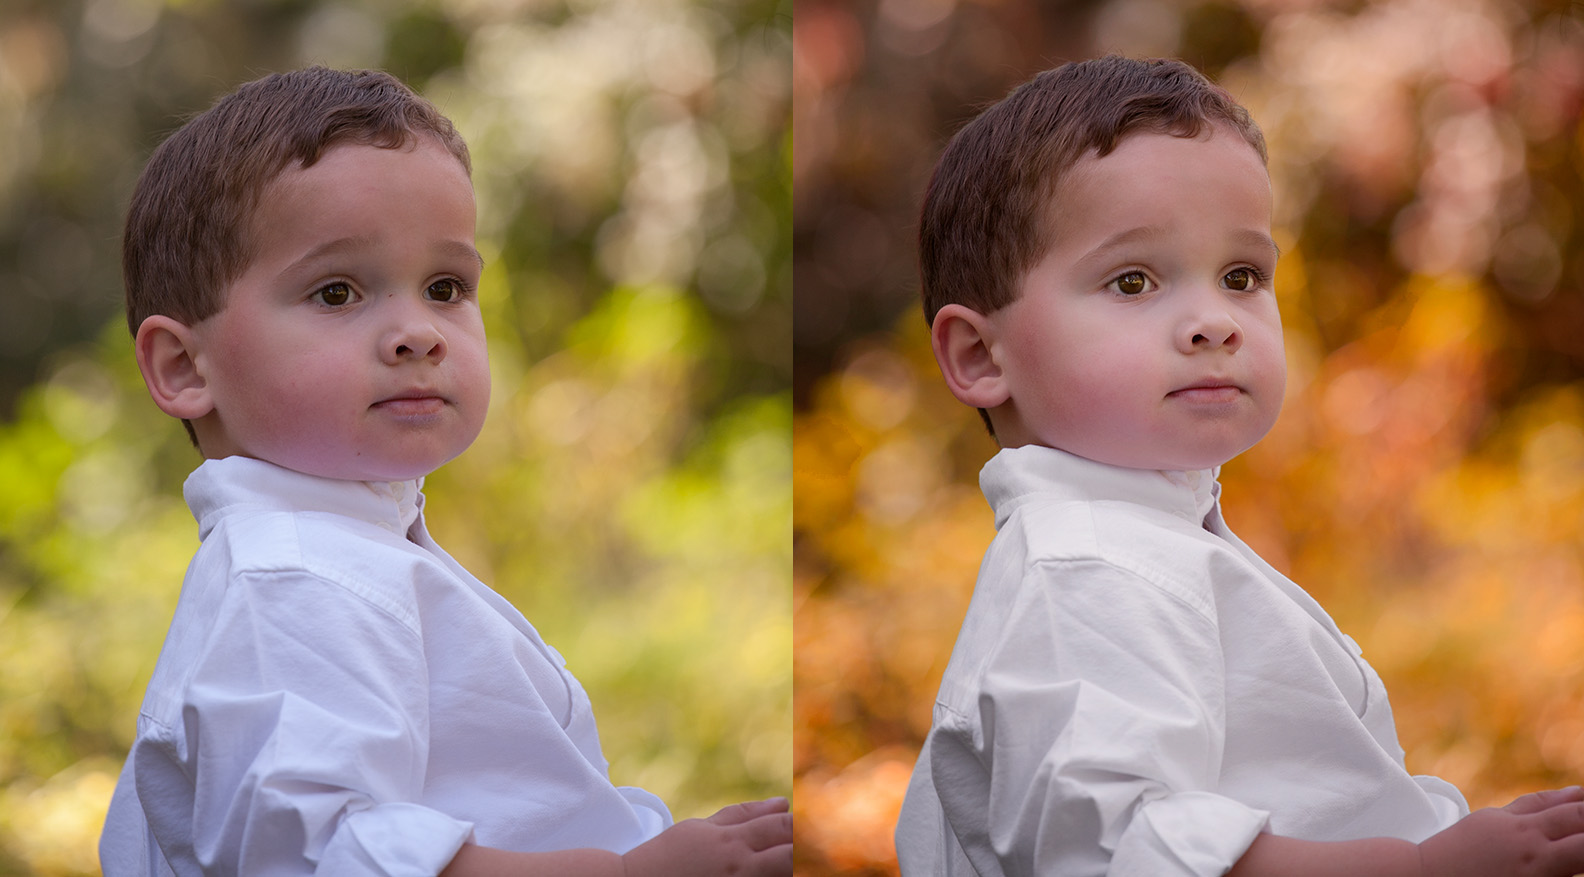 Summer to Autumn in 8 Minutes - Complete Autumn Photoshop Tutorial Video.